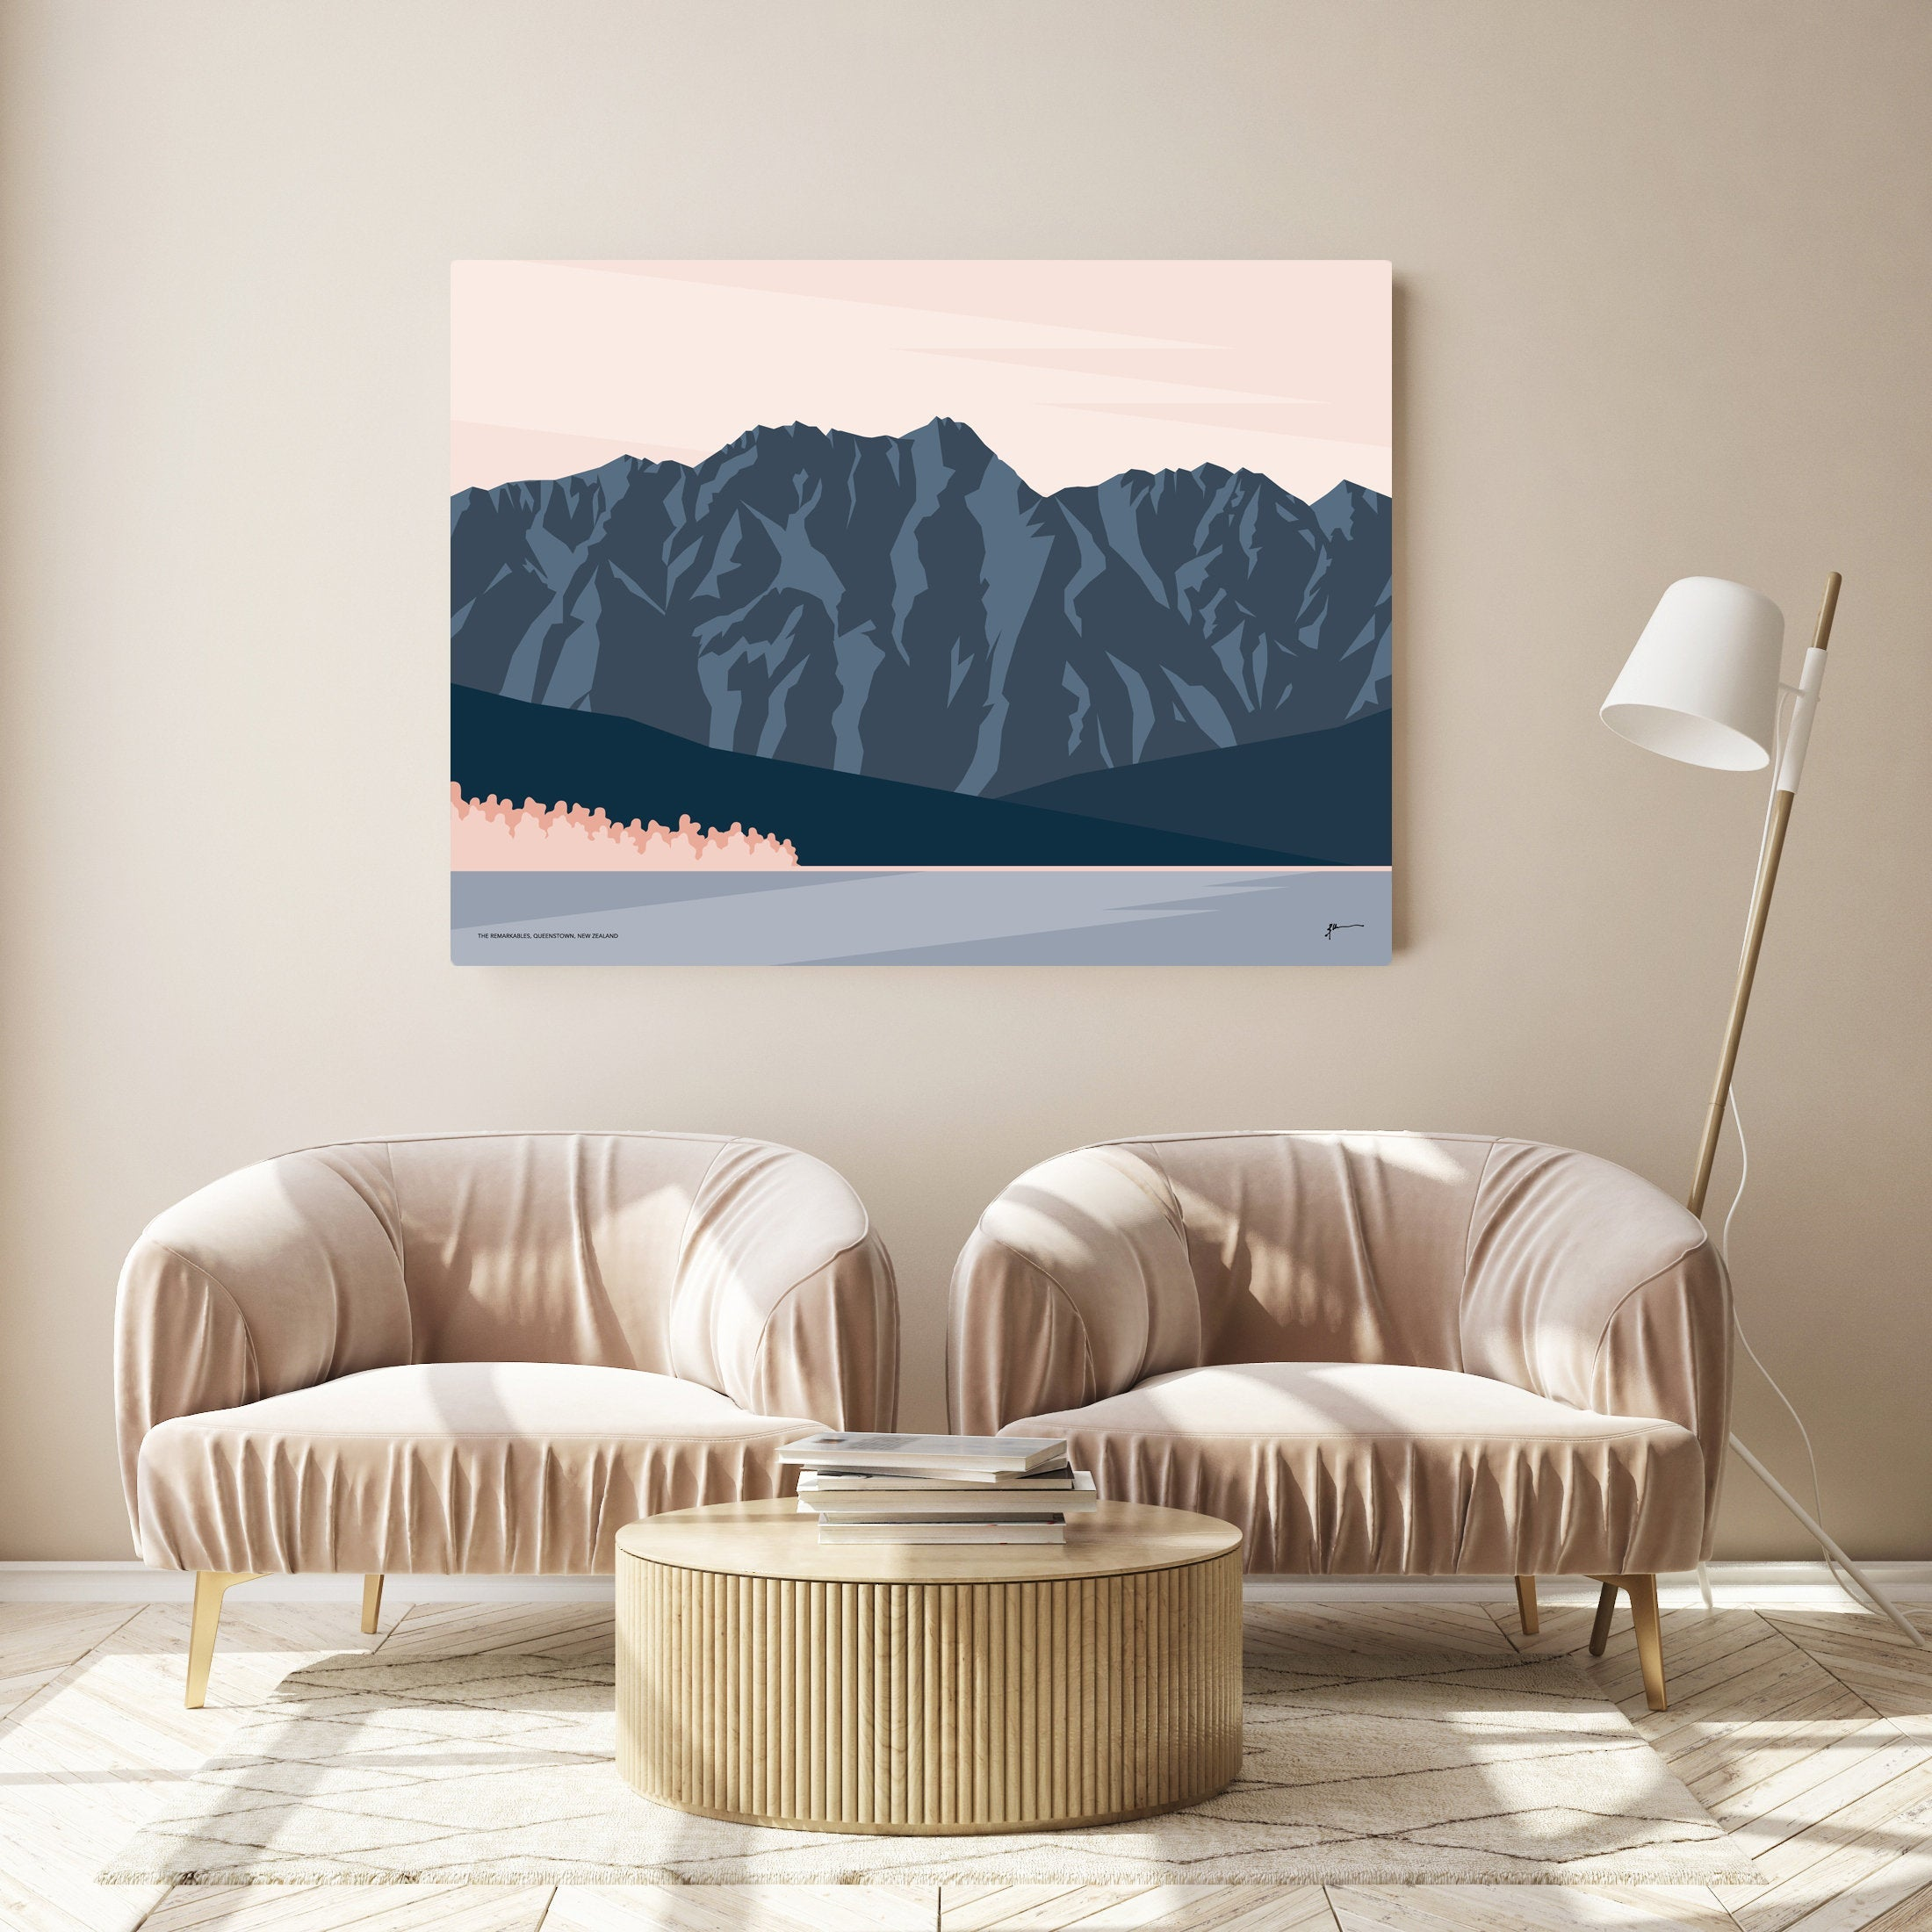 The Remarkables Mountain Range Queenstown, New Zealand Modern Landscape Art Print